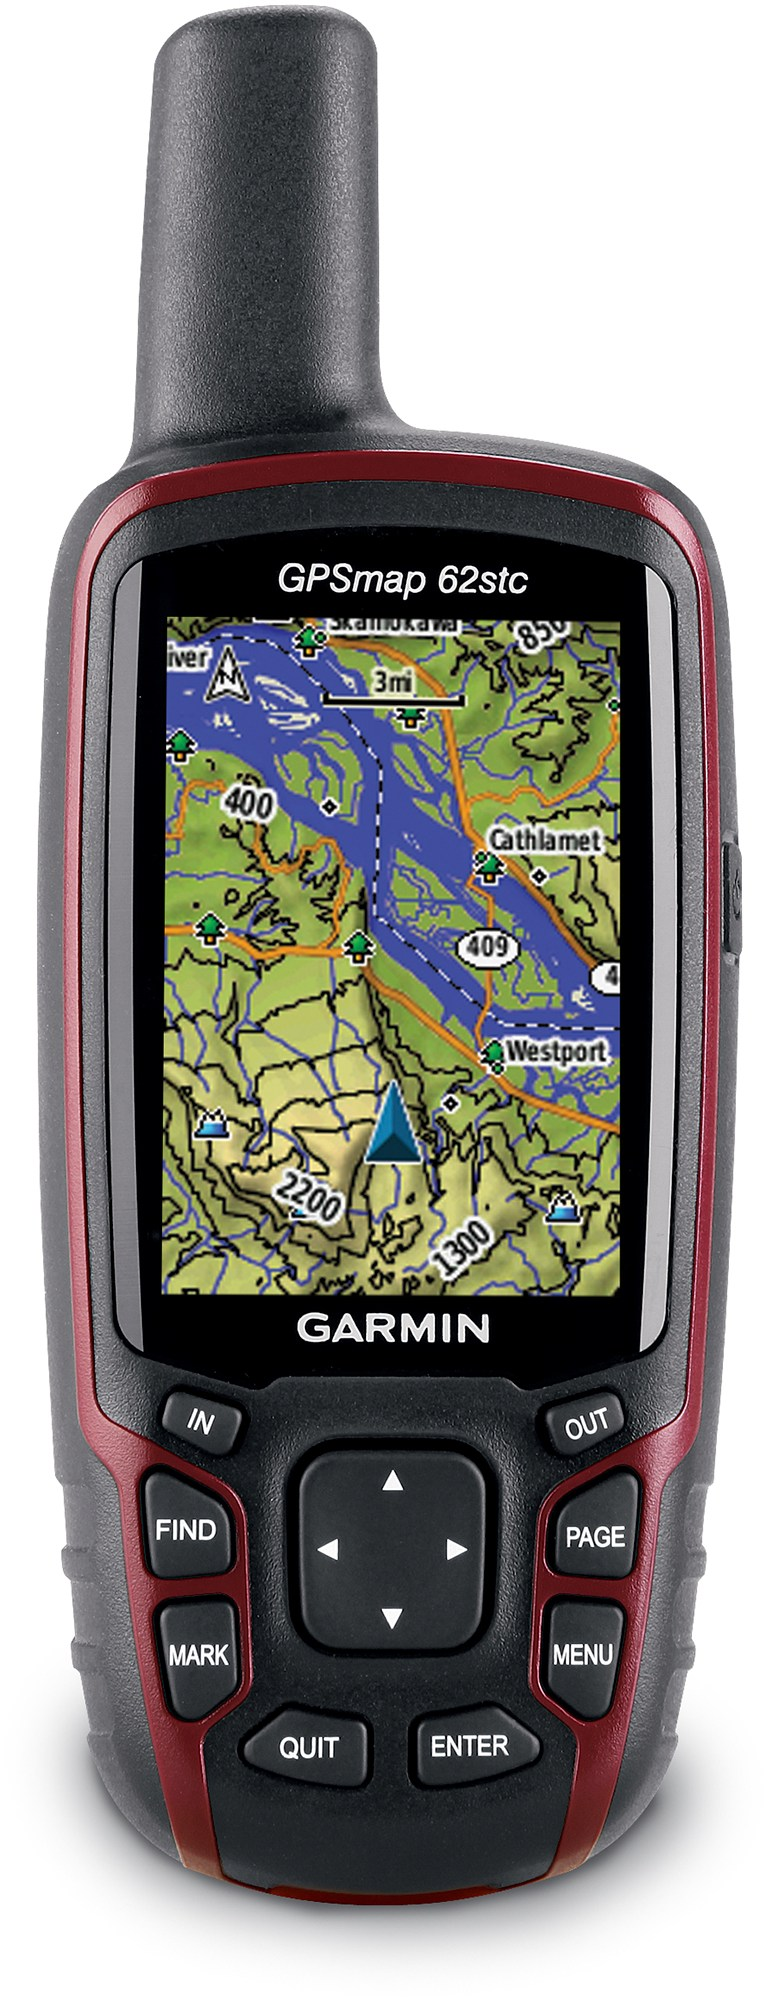 Camp and Hike Garmin GPSMAP 62stc GPS features tpopgraphic maps